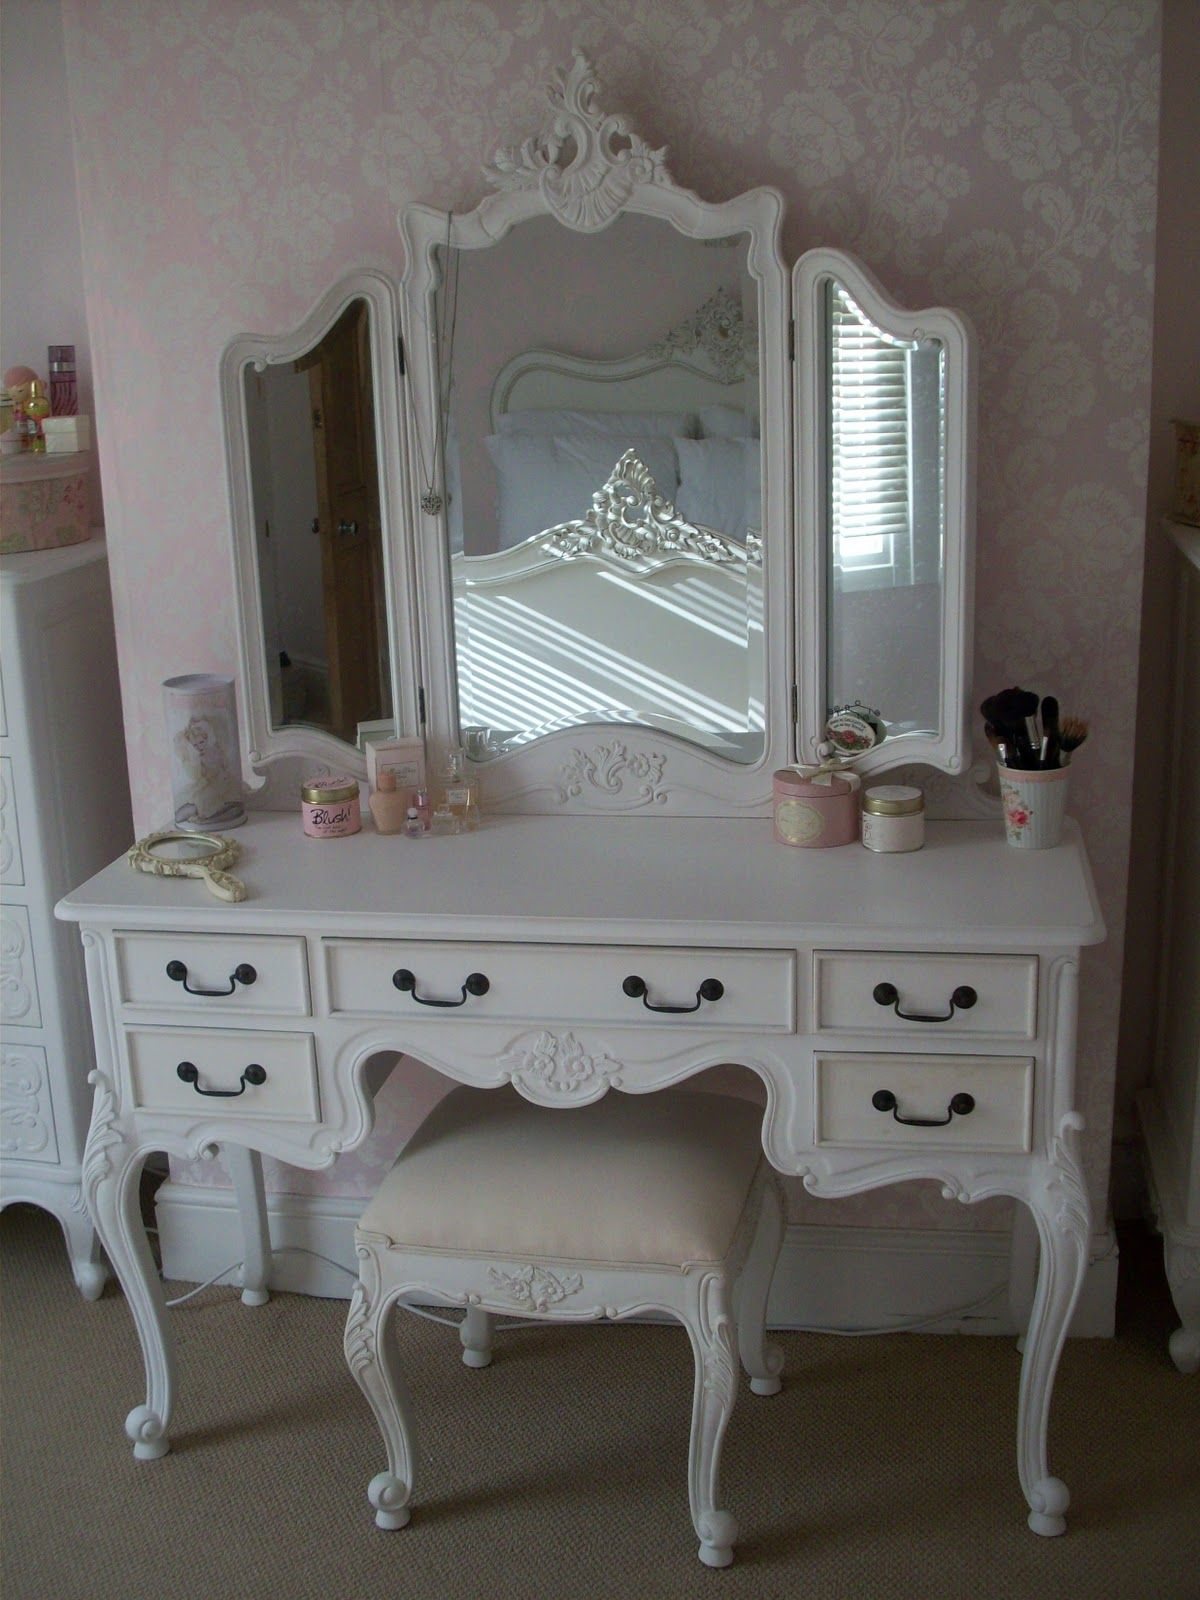 Amazing White Wooden Tri Fold Dresser Vanity Makeup Table With 5 Drawer And Stool For Decorate